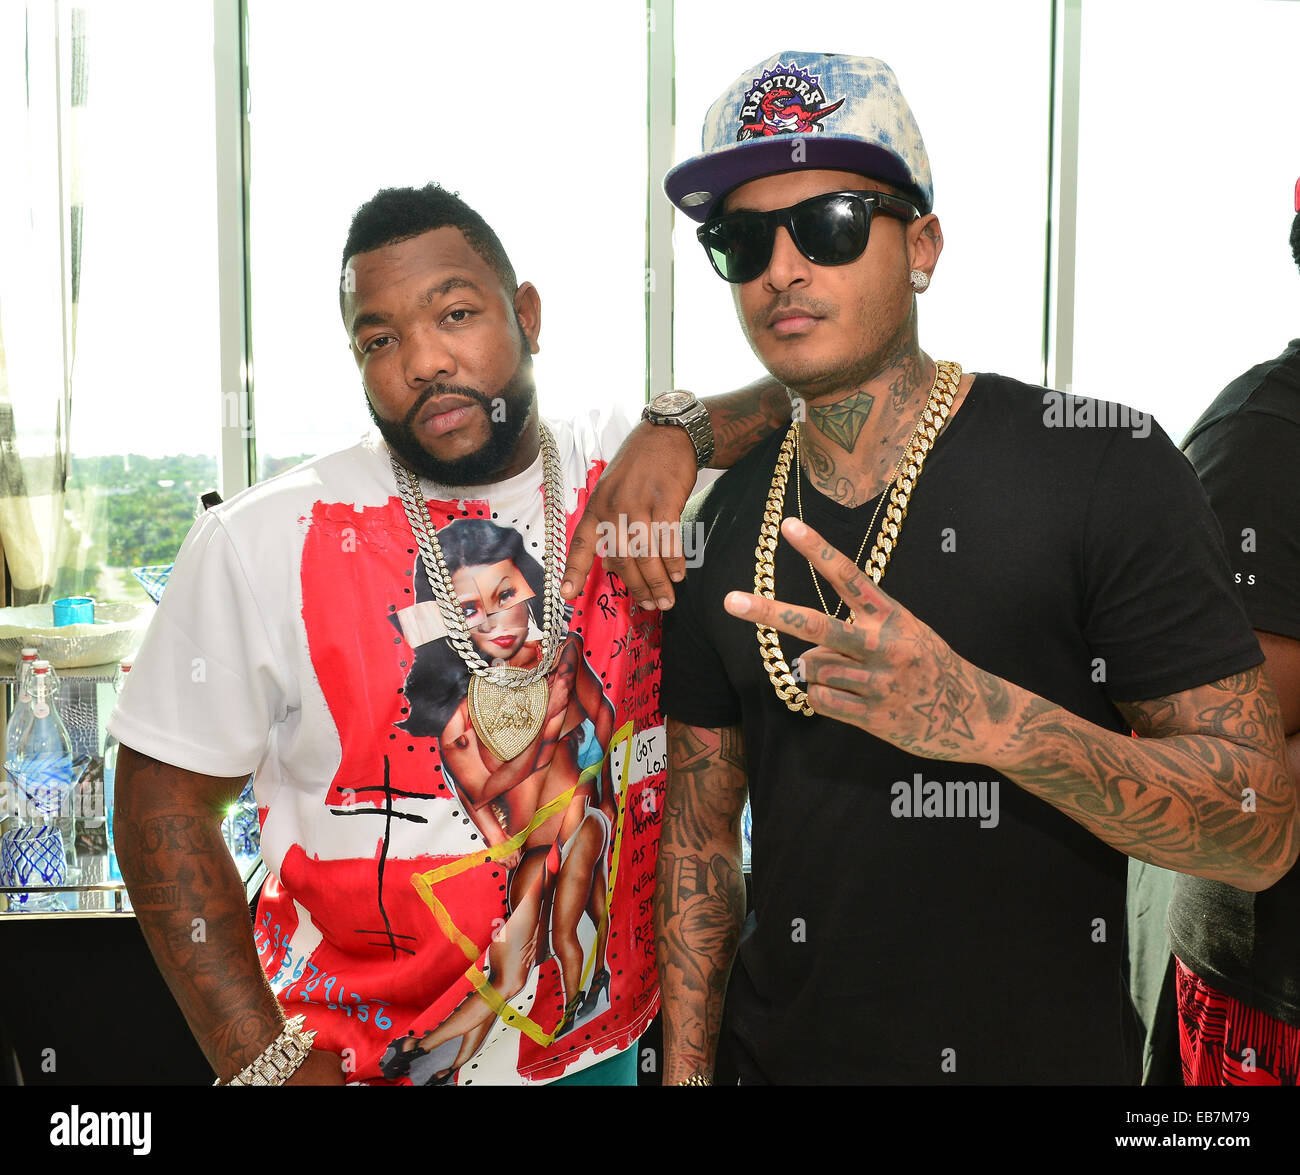 Gorilla Zoe Stock Photos & Gorilla Zoe Stock Images - Alamy